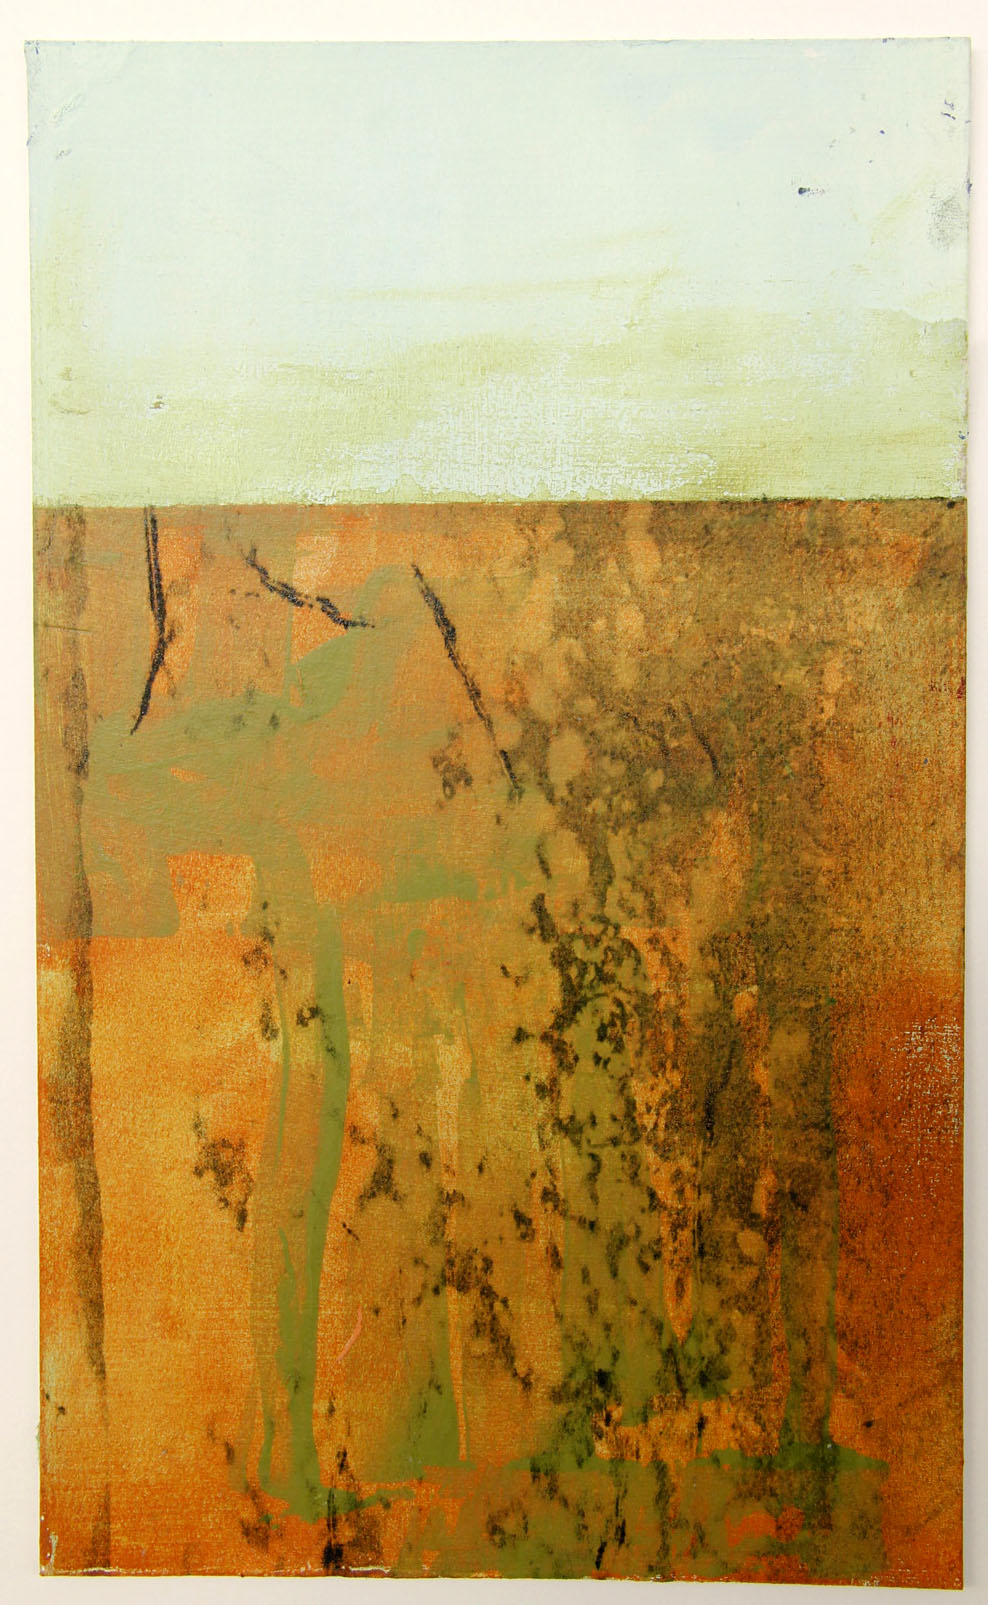 kate_watkins_printmaker_artist_monoprints_coastal5_crop.jpg